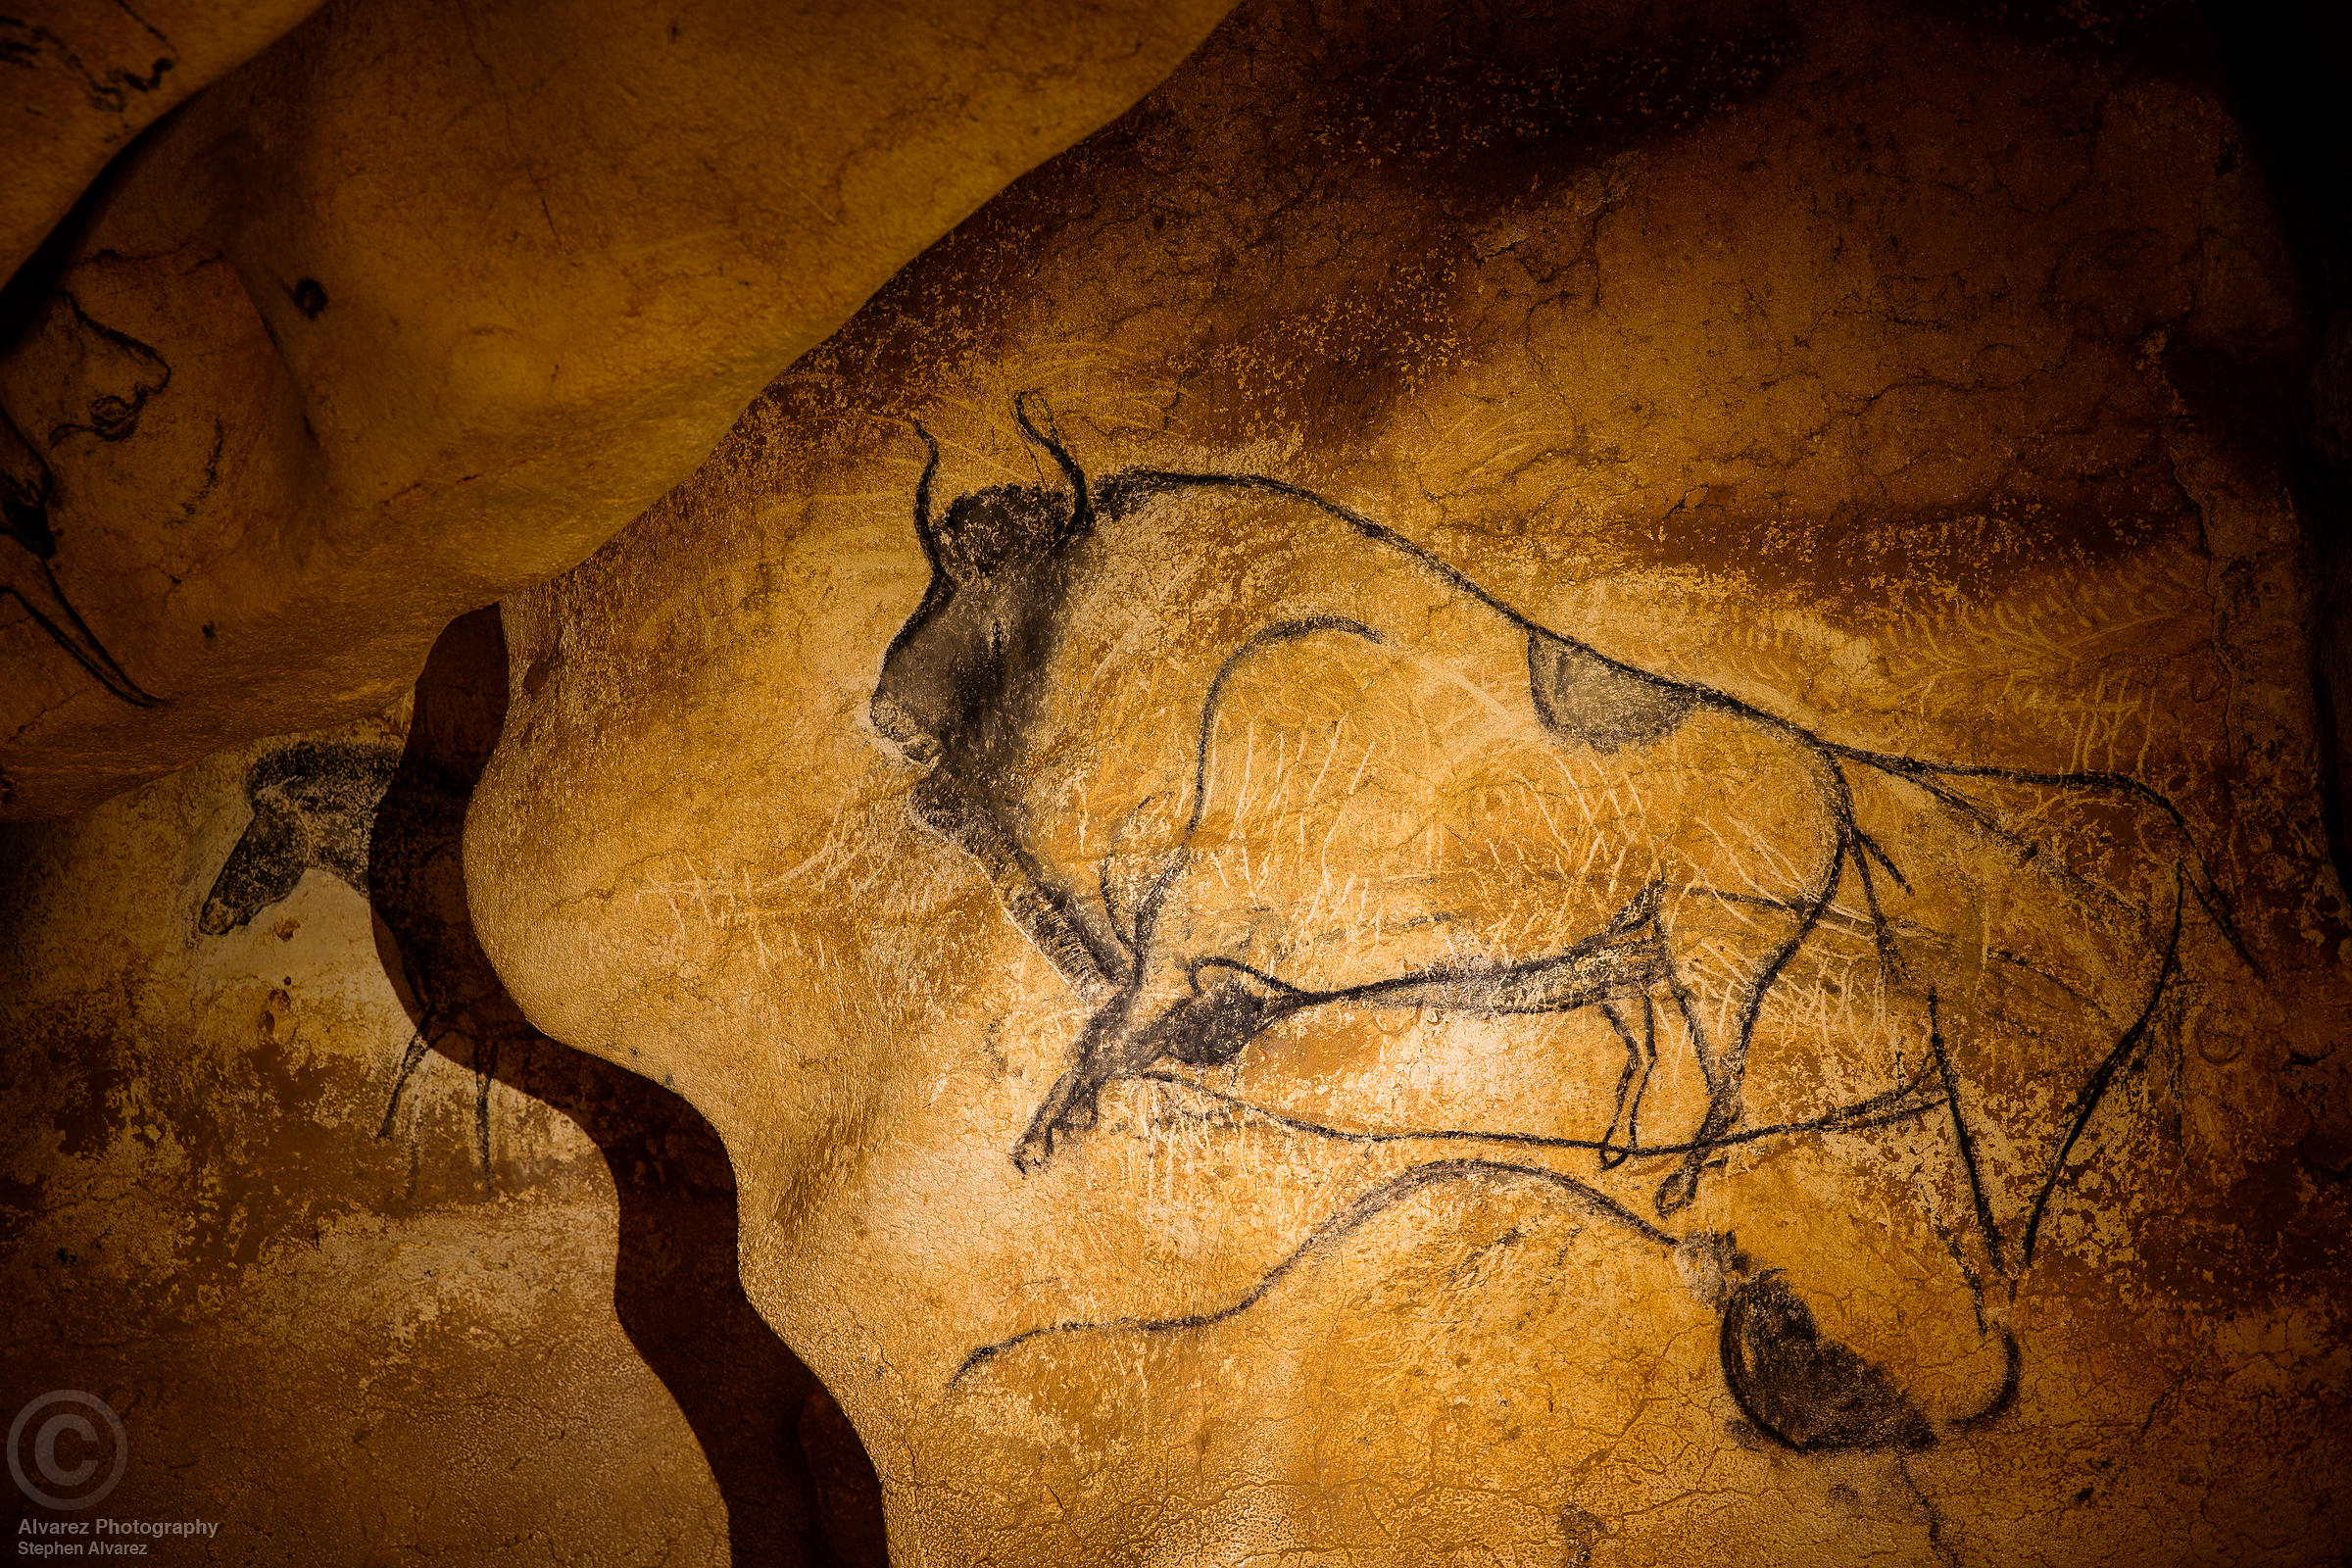 Bison in Chauvet Cave, Ardeche, France